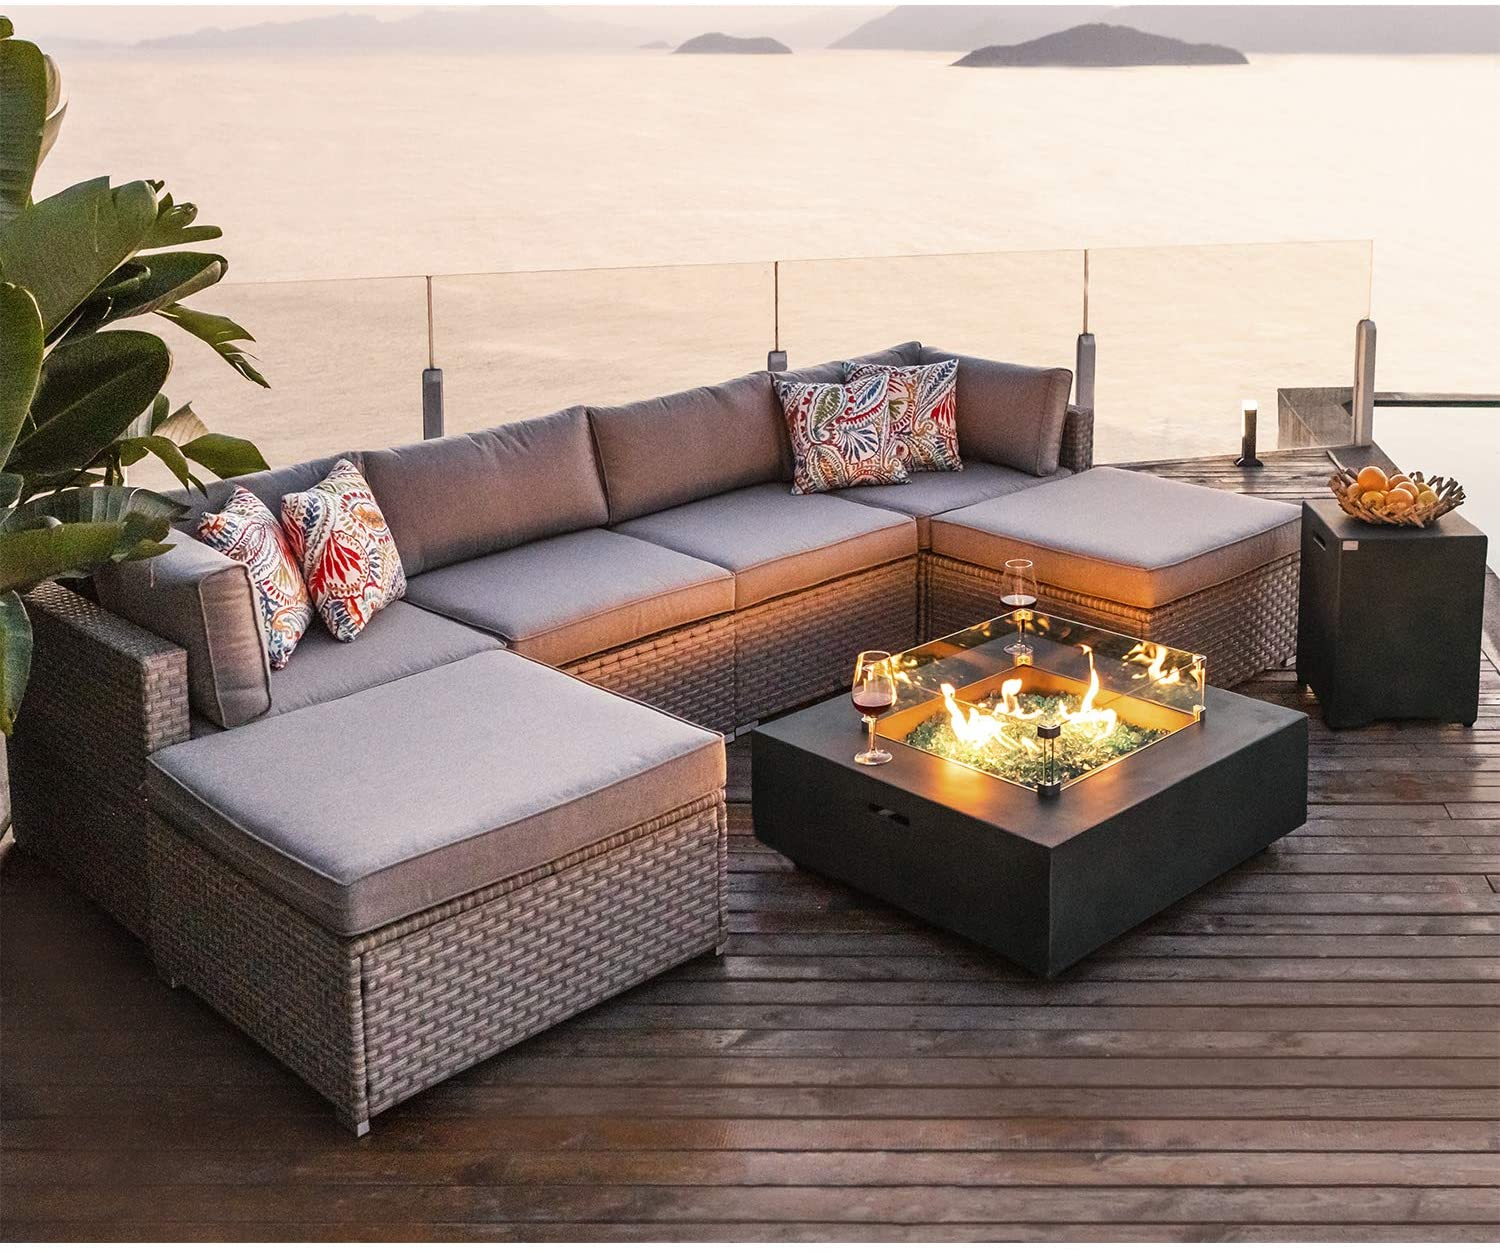 Amazon Com Cosiest 8 Piece Fire Pit Table Outdoor Furniture Sofa Gray Wicker Cushion Sectional W 35 Inch Square Graphite Fire Heater 50 000 Btu W Wind Guard And Tank Outside 20 Gallon For Garden Pool Garden